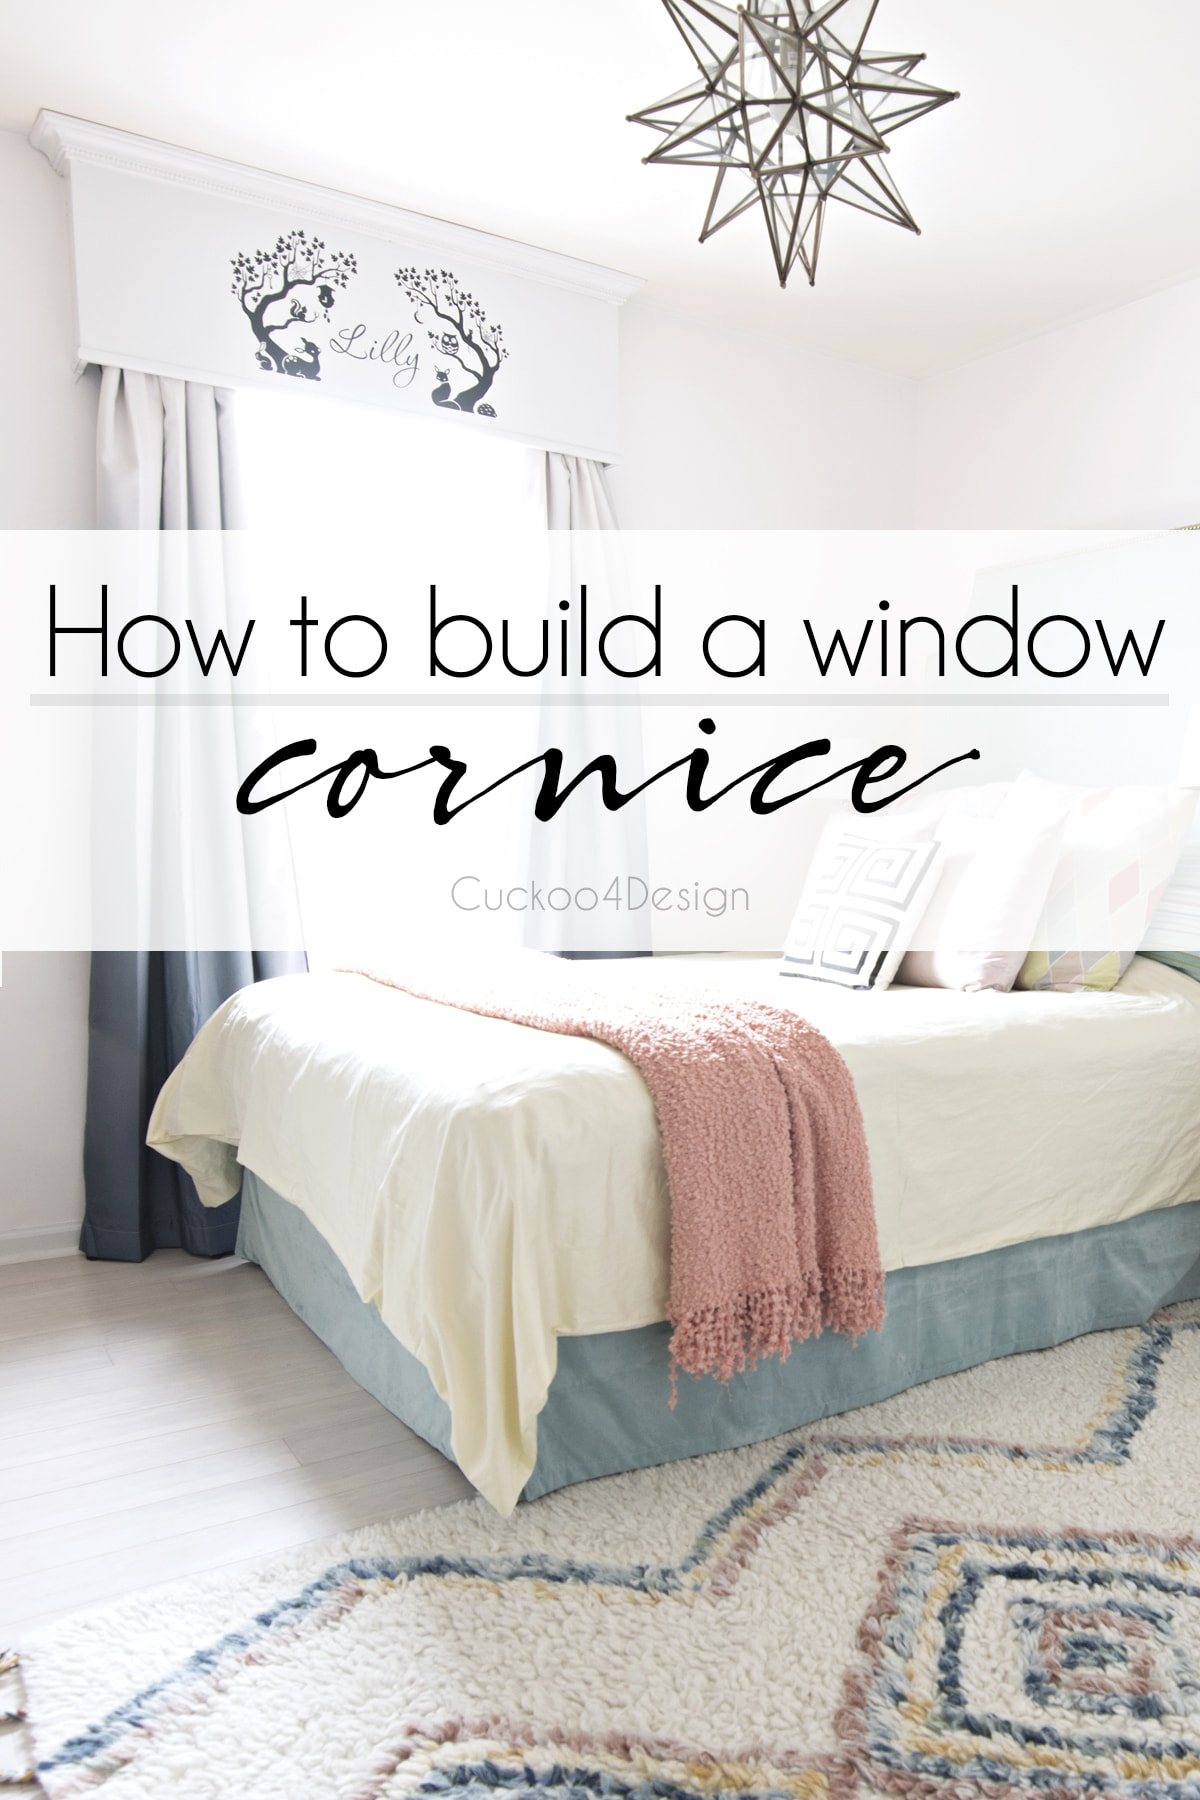 How to build a painted window cornice | DIY window valance | how to build a Window valance | black and white window valance | window cornice